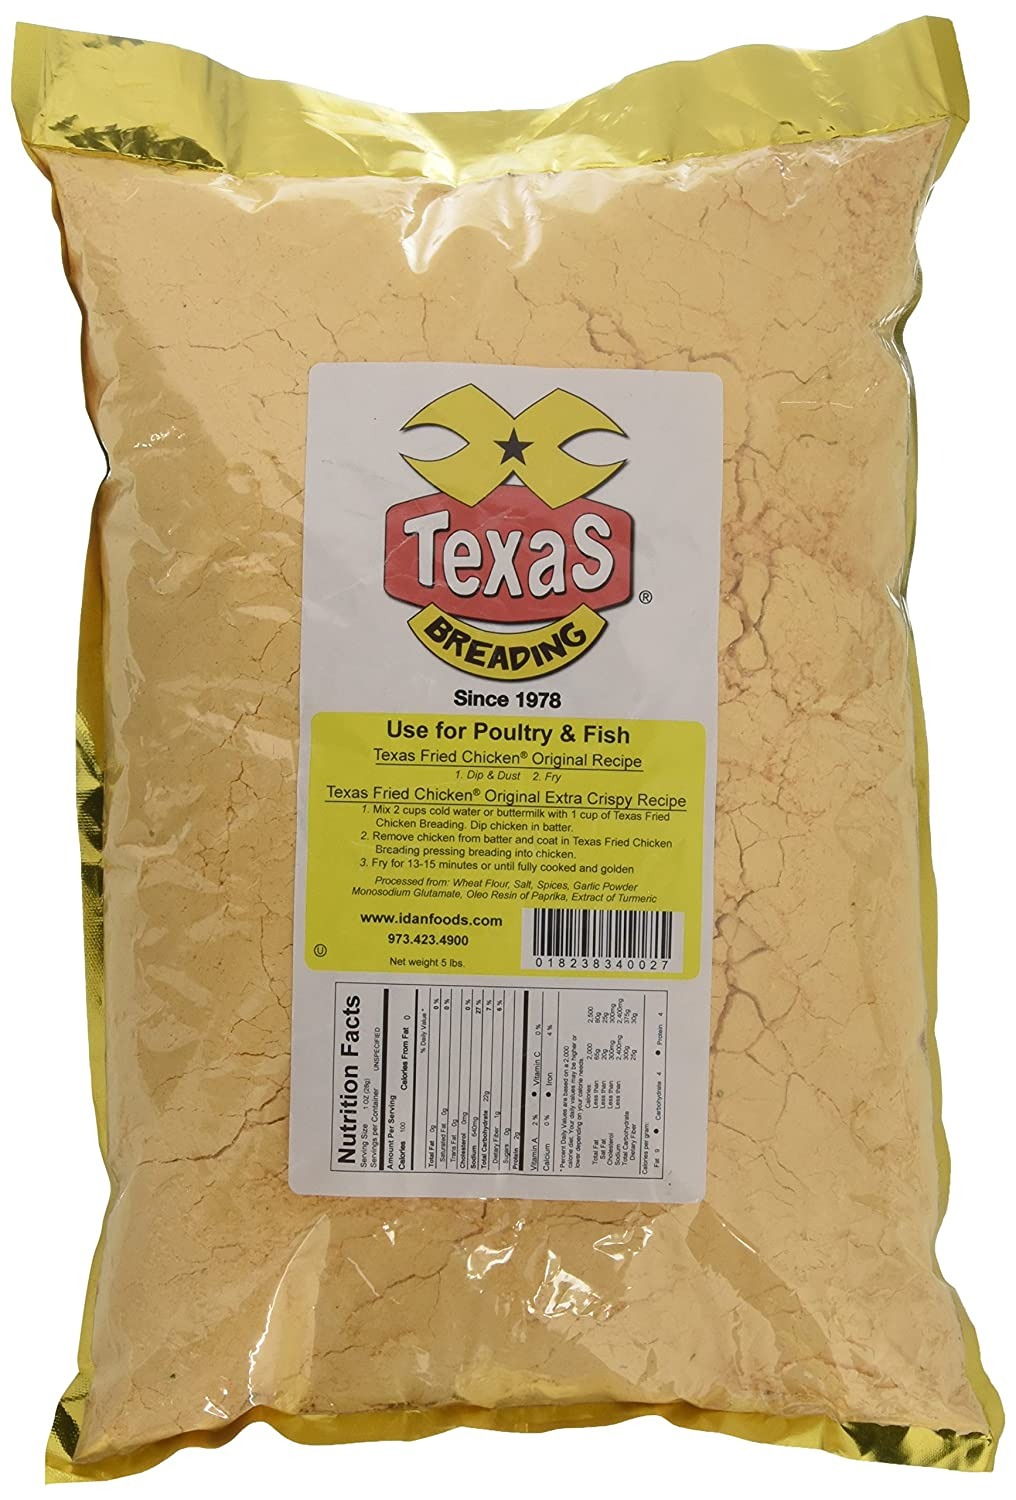 Texas Fried Chicken Breading, 5 lbs.